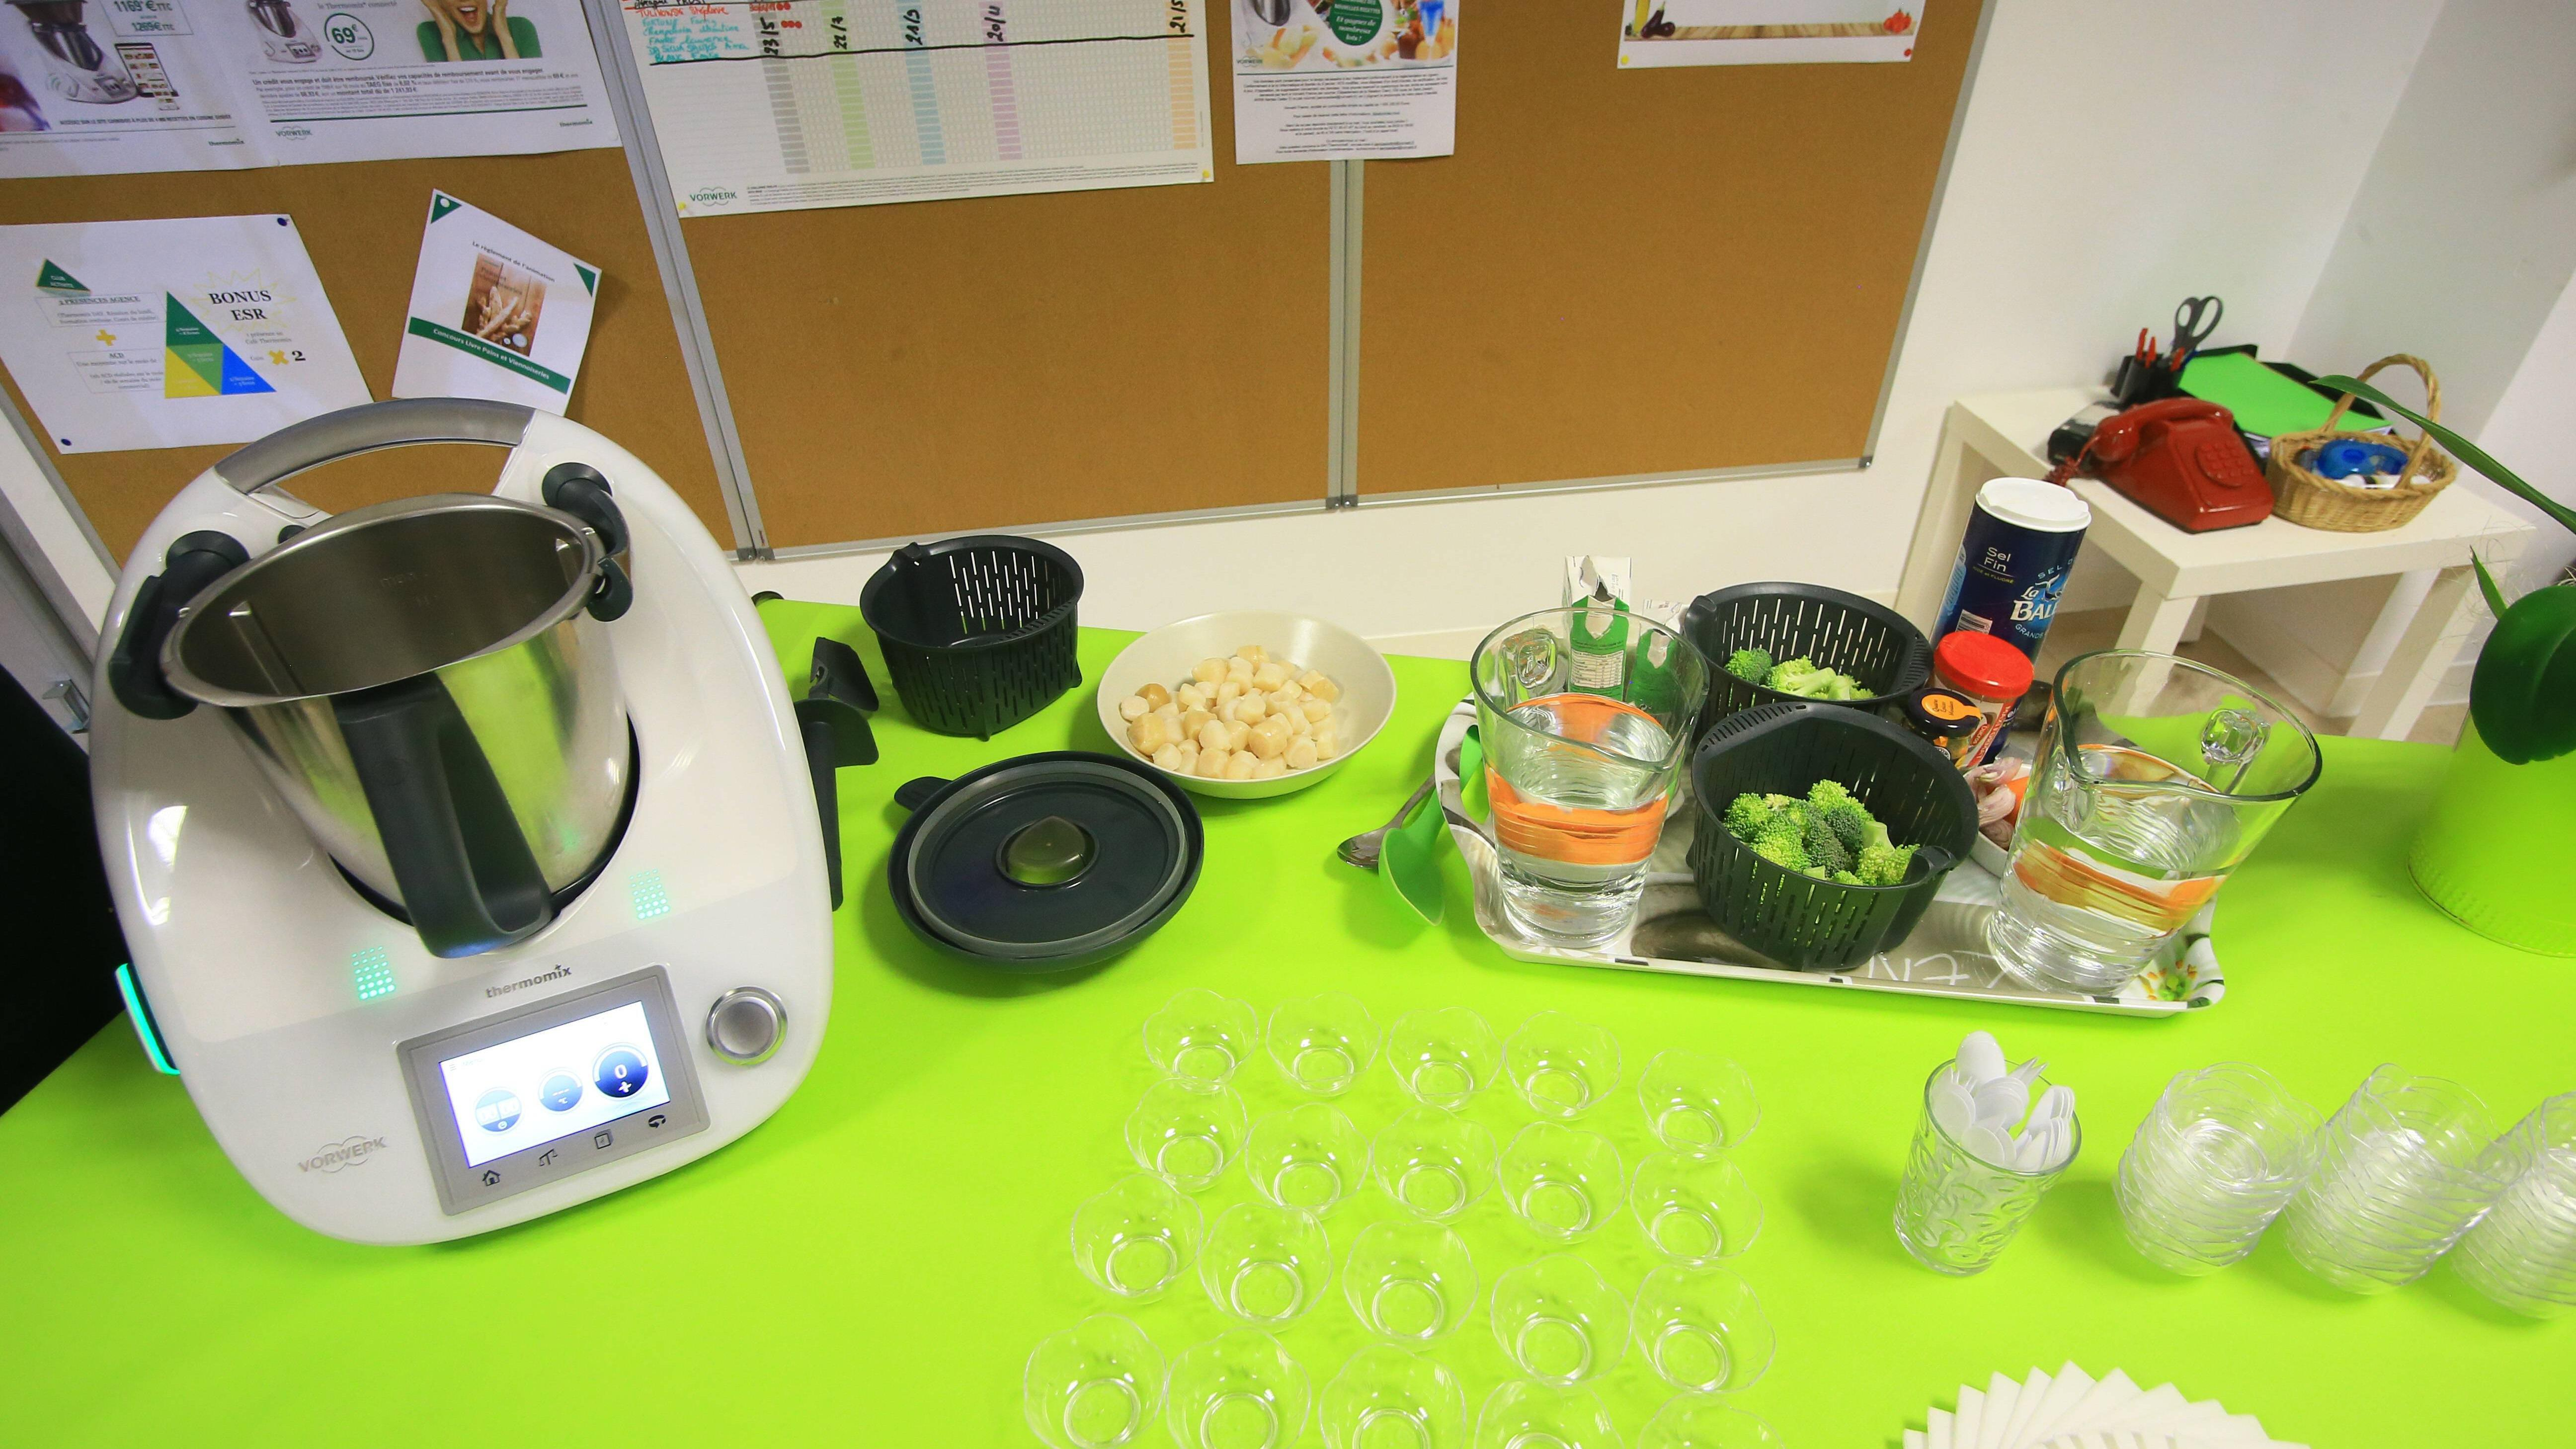 Thermomix Cook Key: Funktionen und Kosten